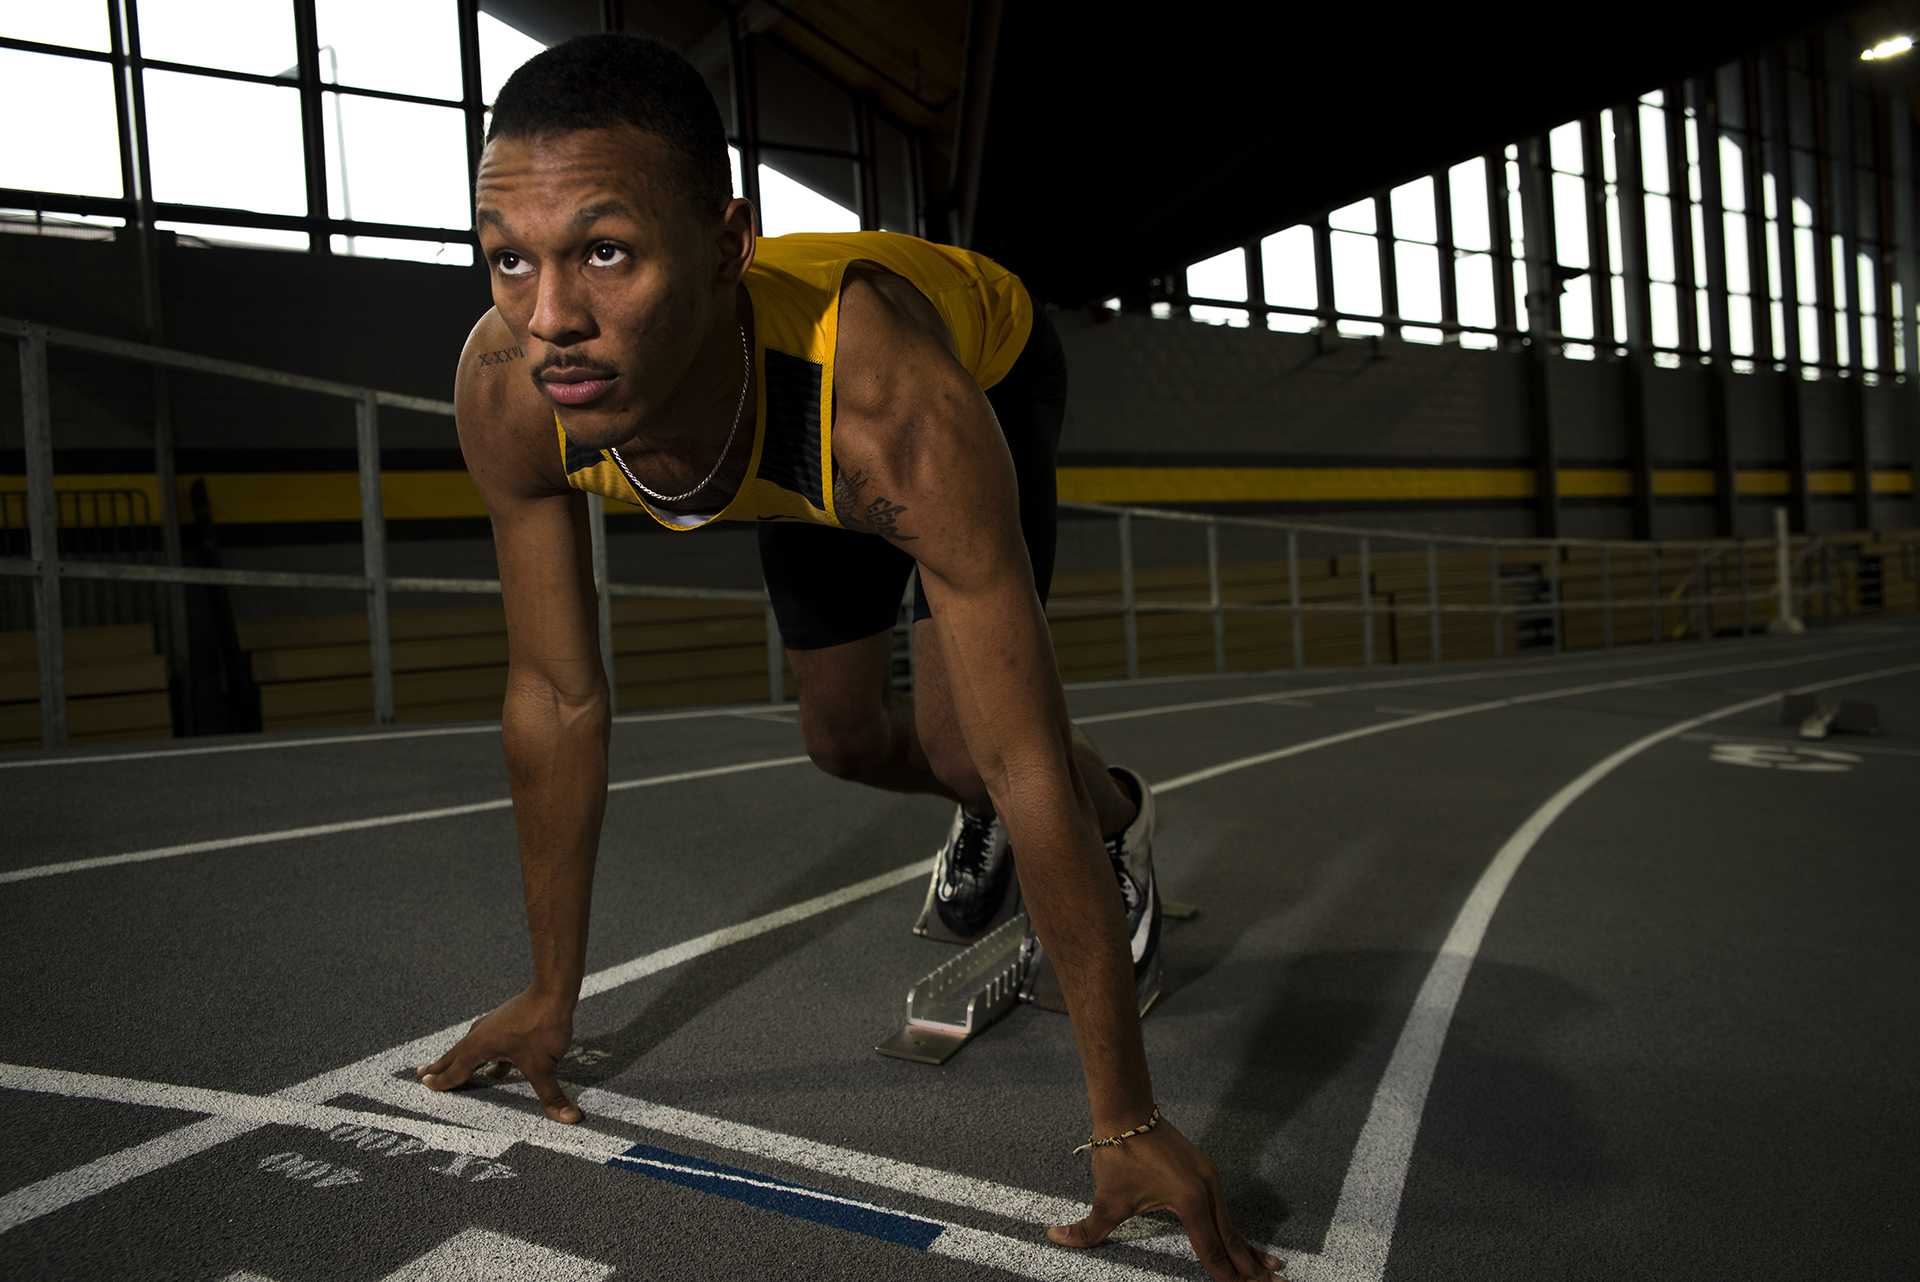 Iowa junior Mar'yea Harris poses for a portrait inside the University of Iowa Recreation Building on Wednesday, Jan. 10, 2018. Harris is the 2017 indoor season leader for the 400 meter dash with a time of 45.75. The Hawkeyes will host their first intersquad meet, the Hawkeye Invitational on Jan. 13. (Ben Allan Smith/The Daily Iowan)